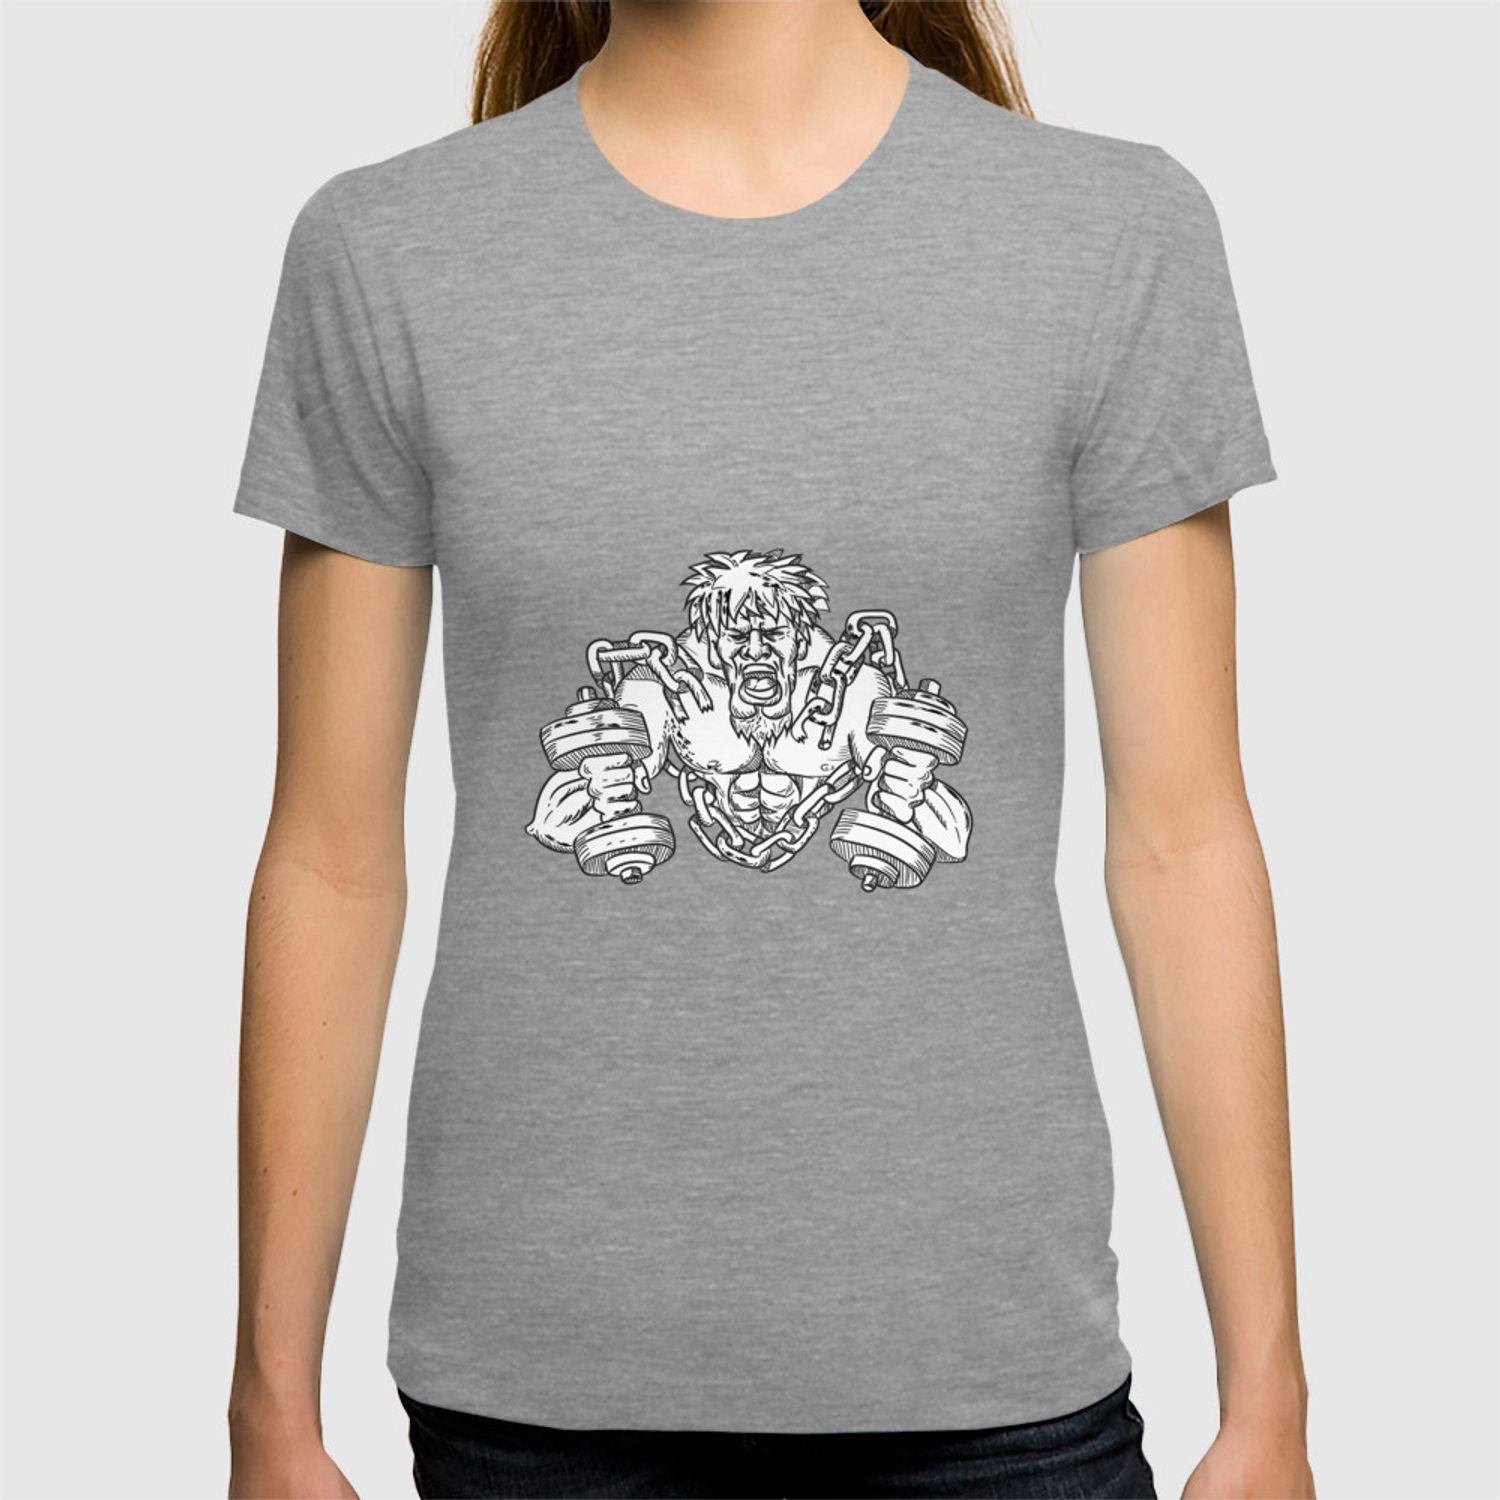 Buffed Athlete Dumbbells Breaking Free From Chains Drawing T-shirt